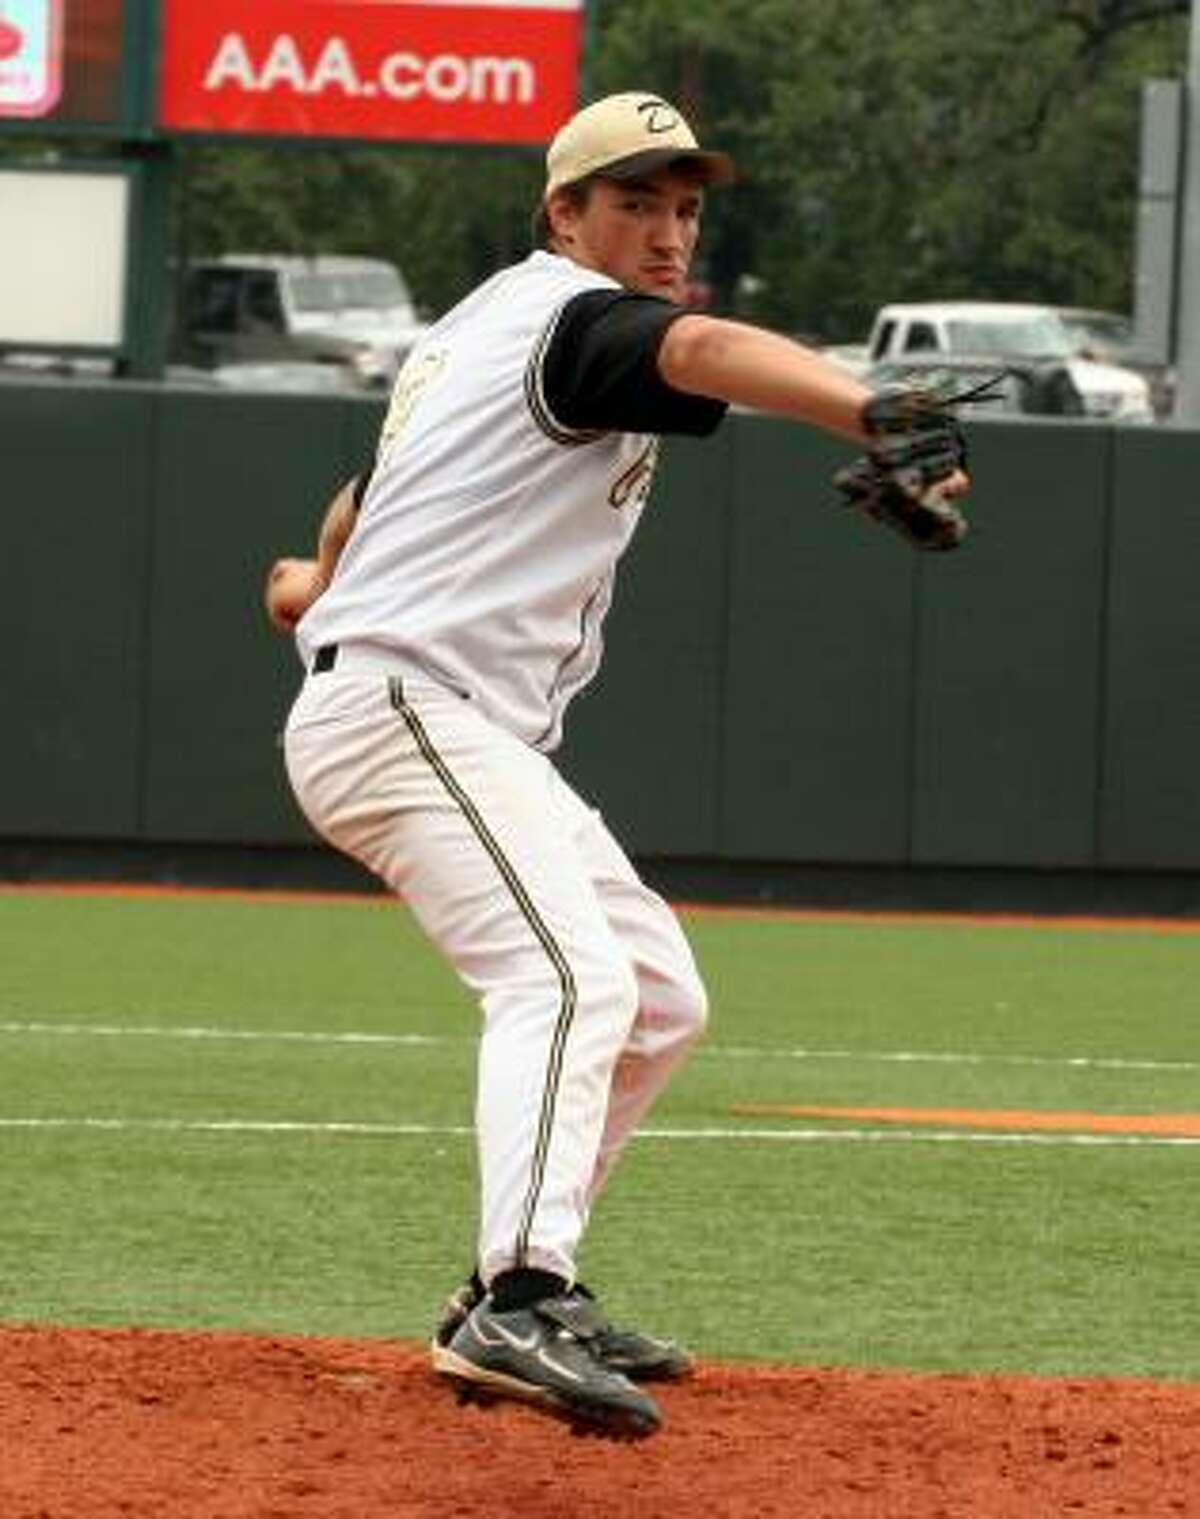 Danbury pitcher Scott Zimmerle threw a complete game and only gave up two hits.